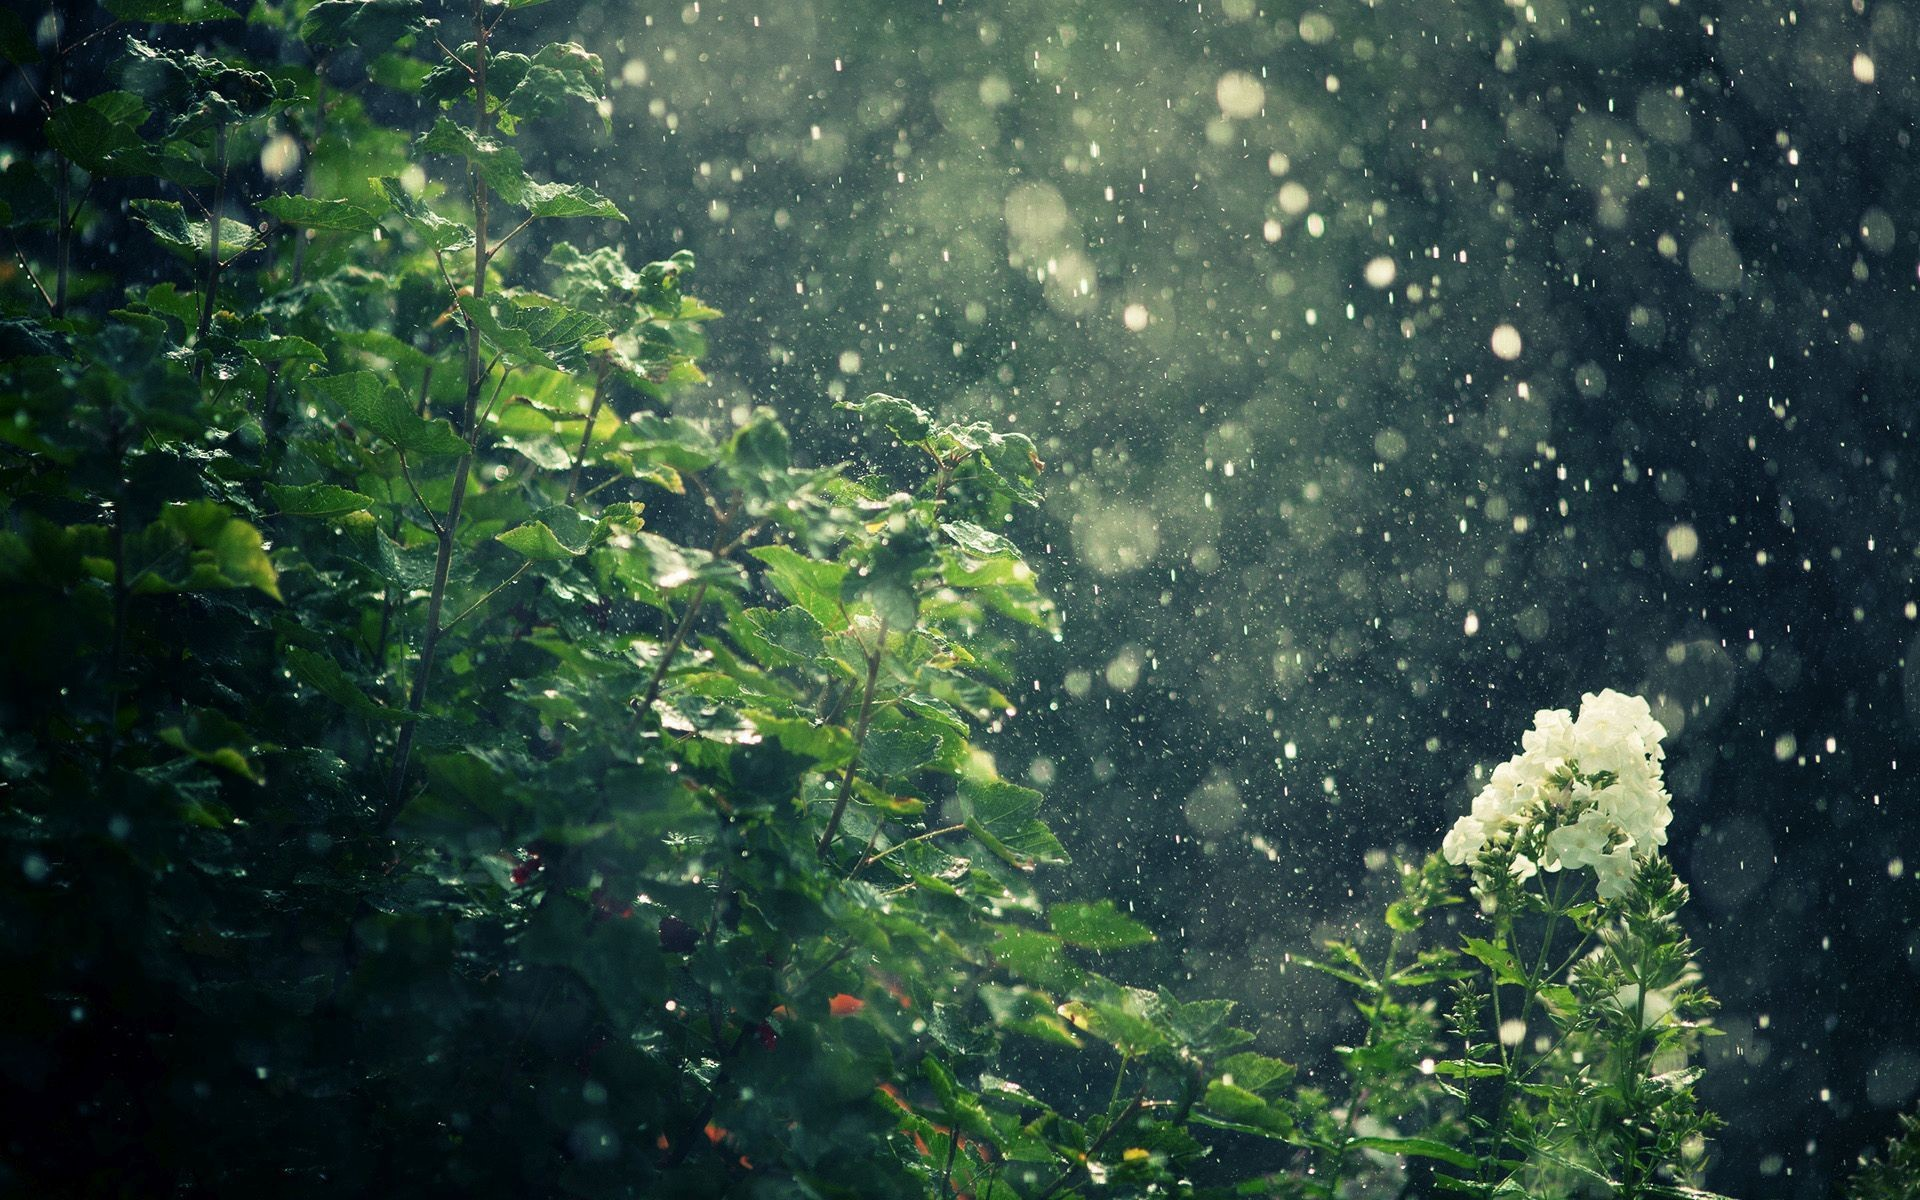 1920x1200 ... Raining on the flowers HD Wallpaper